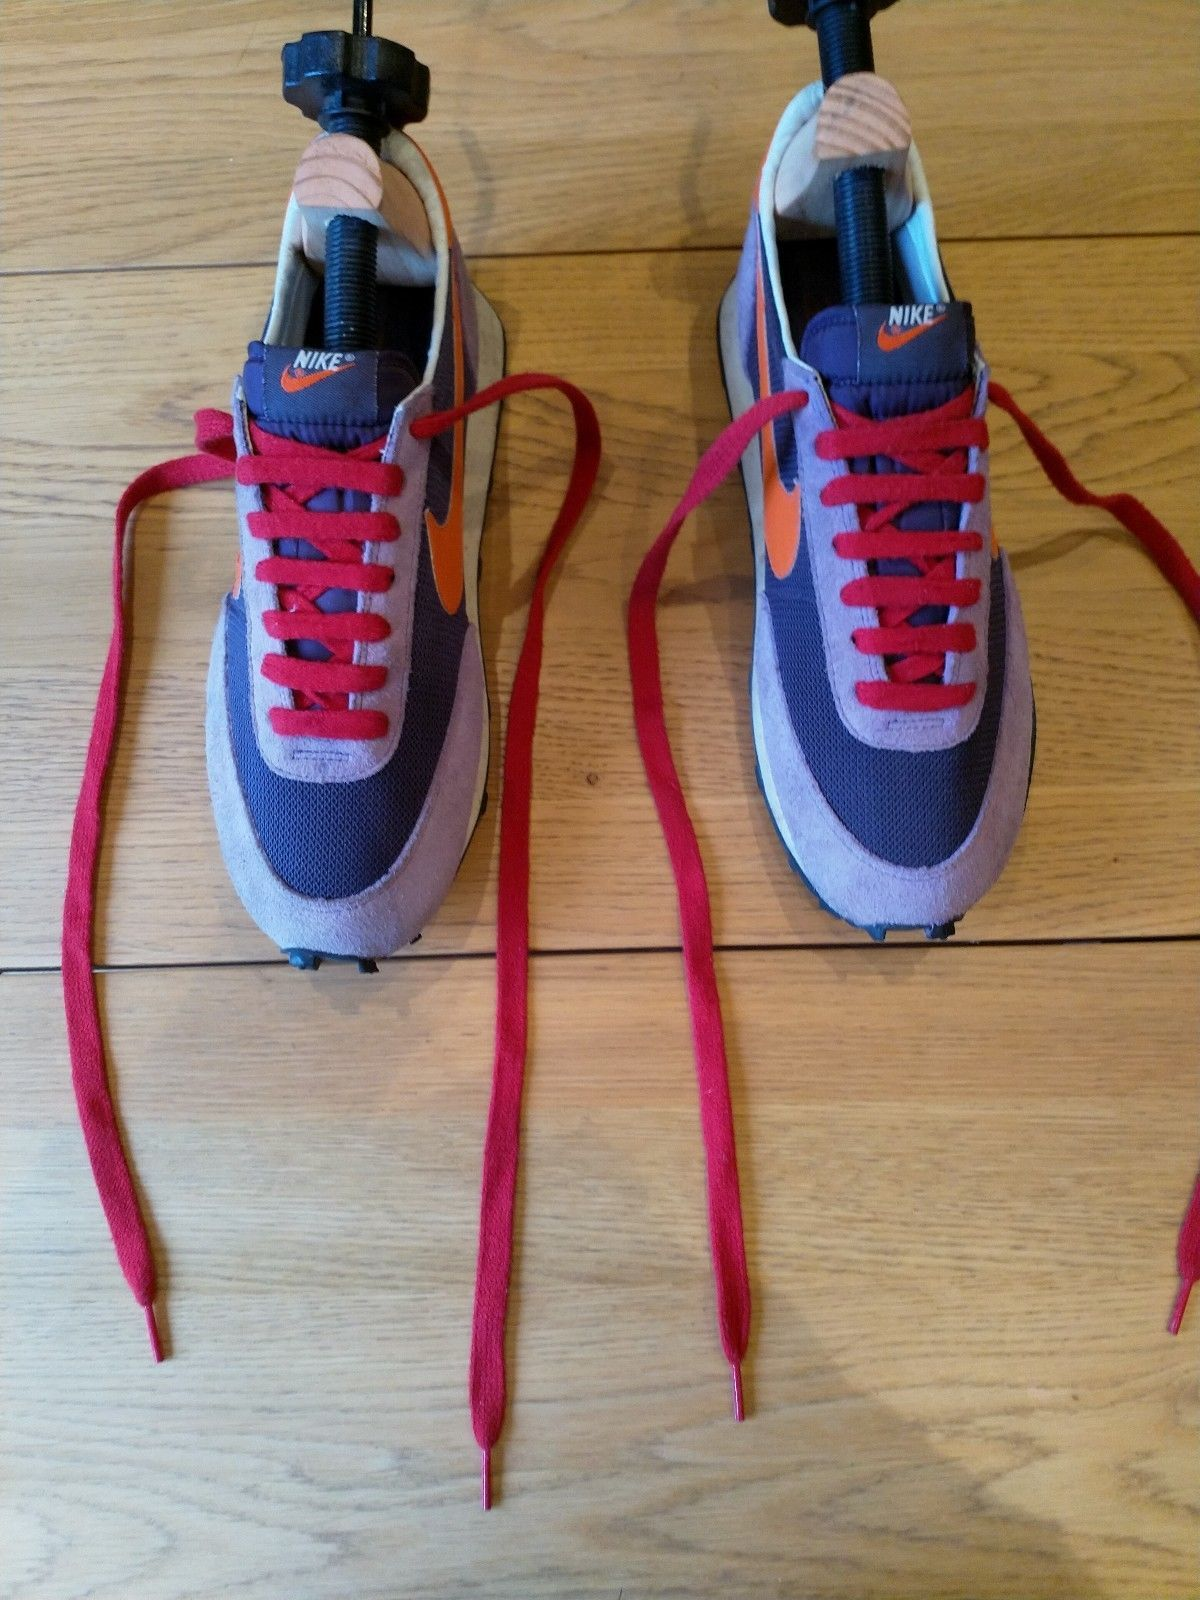 8b7dab8d9bd Nike vintage patent Waffle Racer running shoes Trainers rare uk9 LD 1000  premium